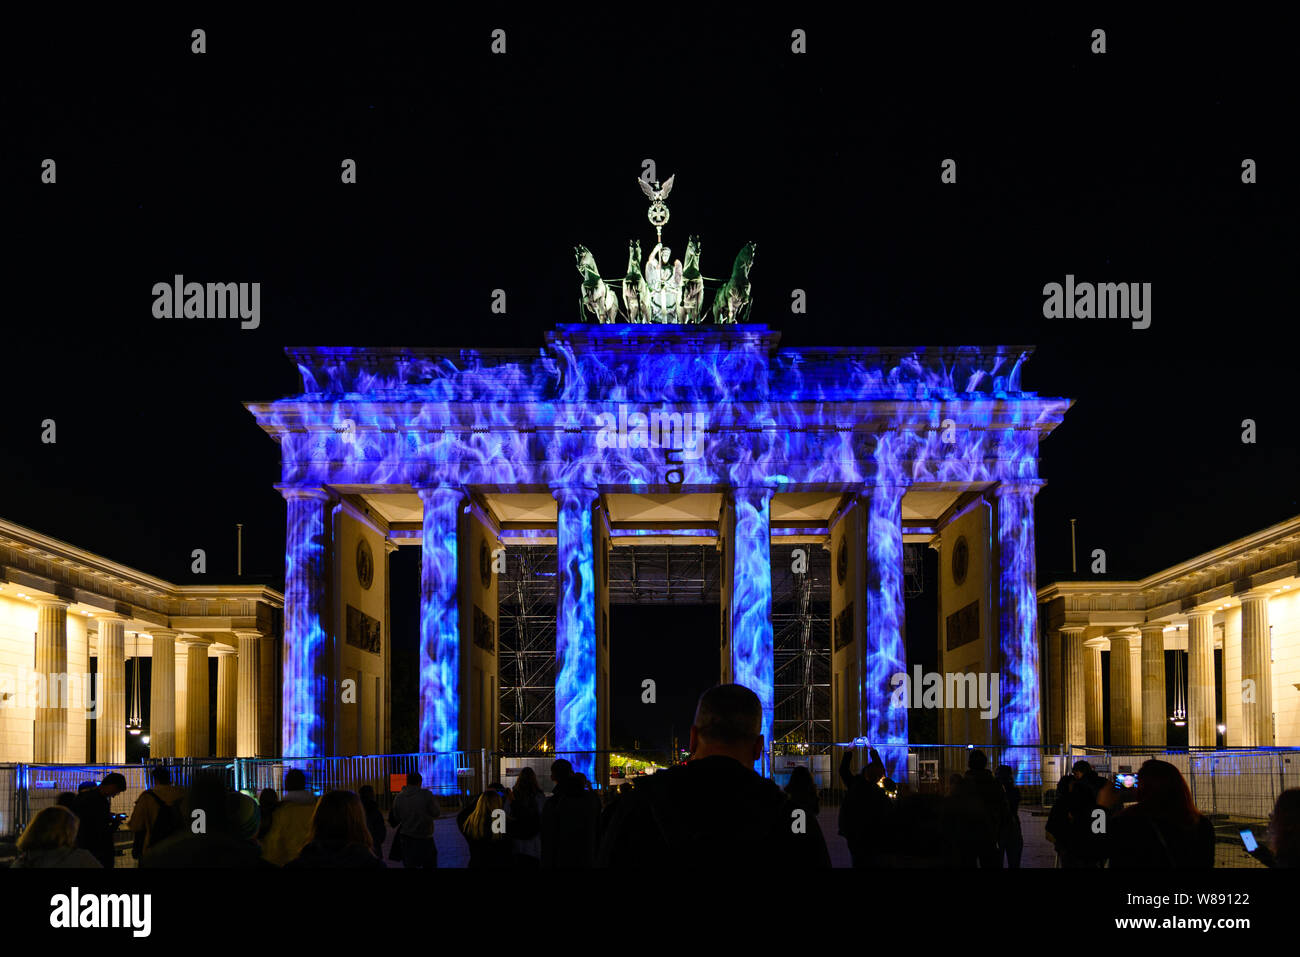 People Enjoy Event Festival Of Lights Berlin Leuchtet The Projection Mapping Lighting Art At Brandenburg Gate During The Night Stock Photo Alamy